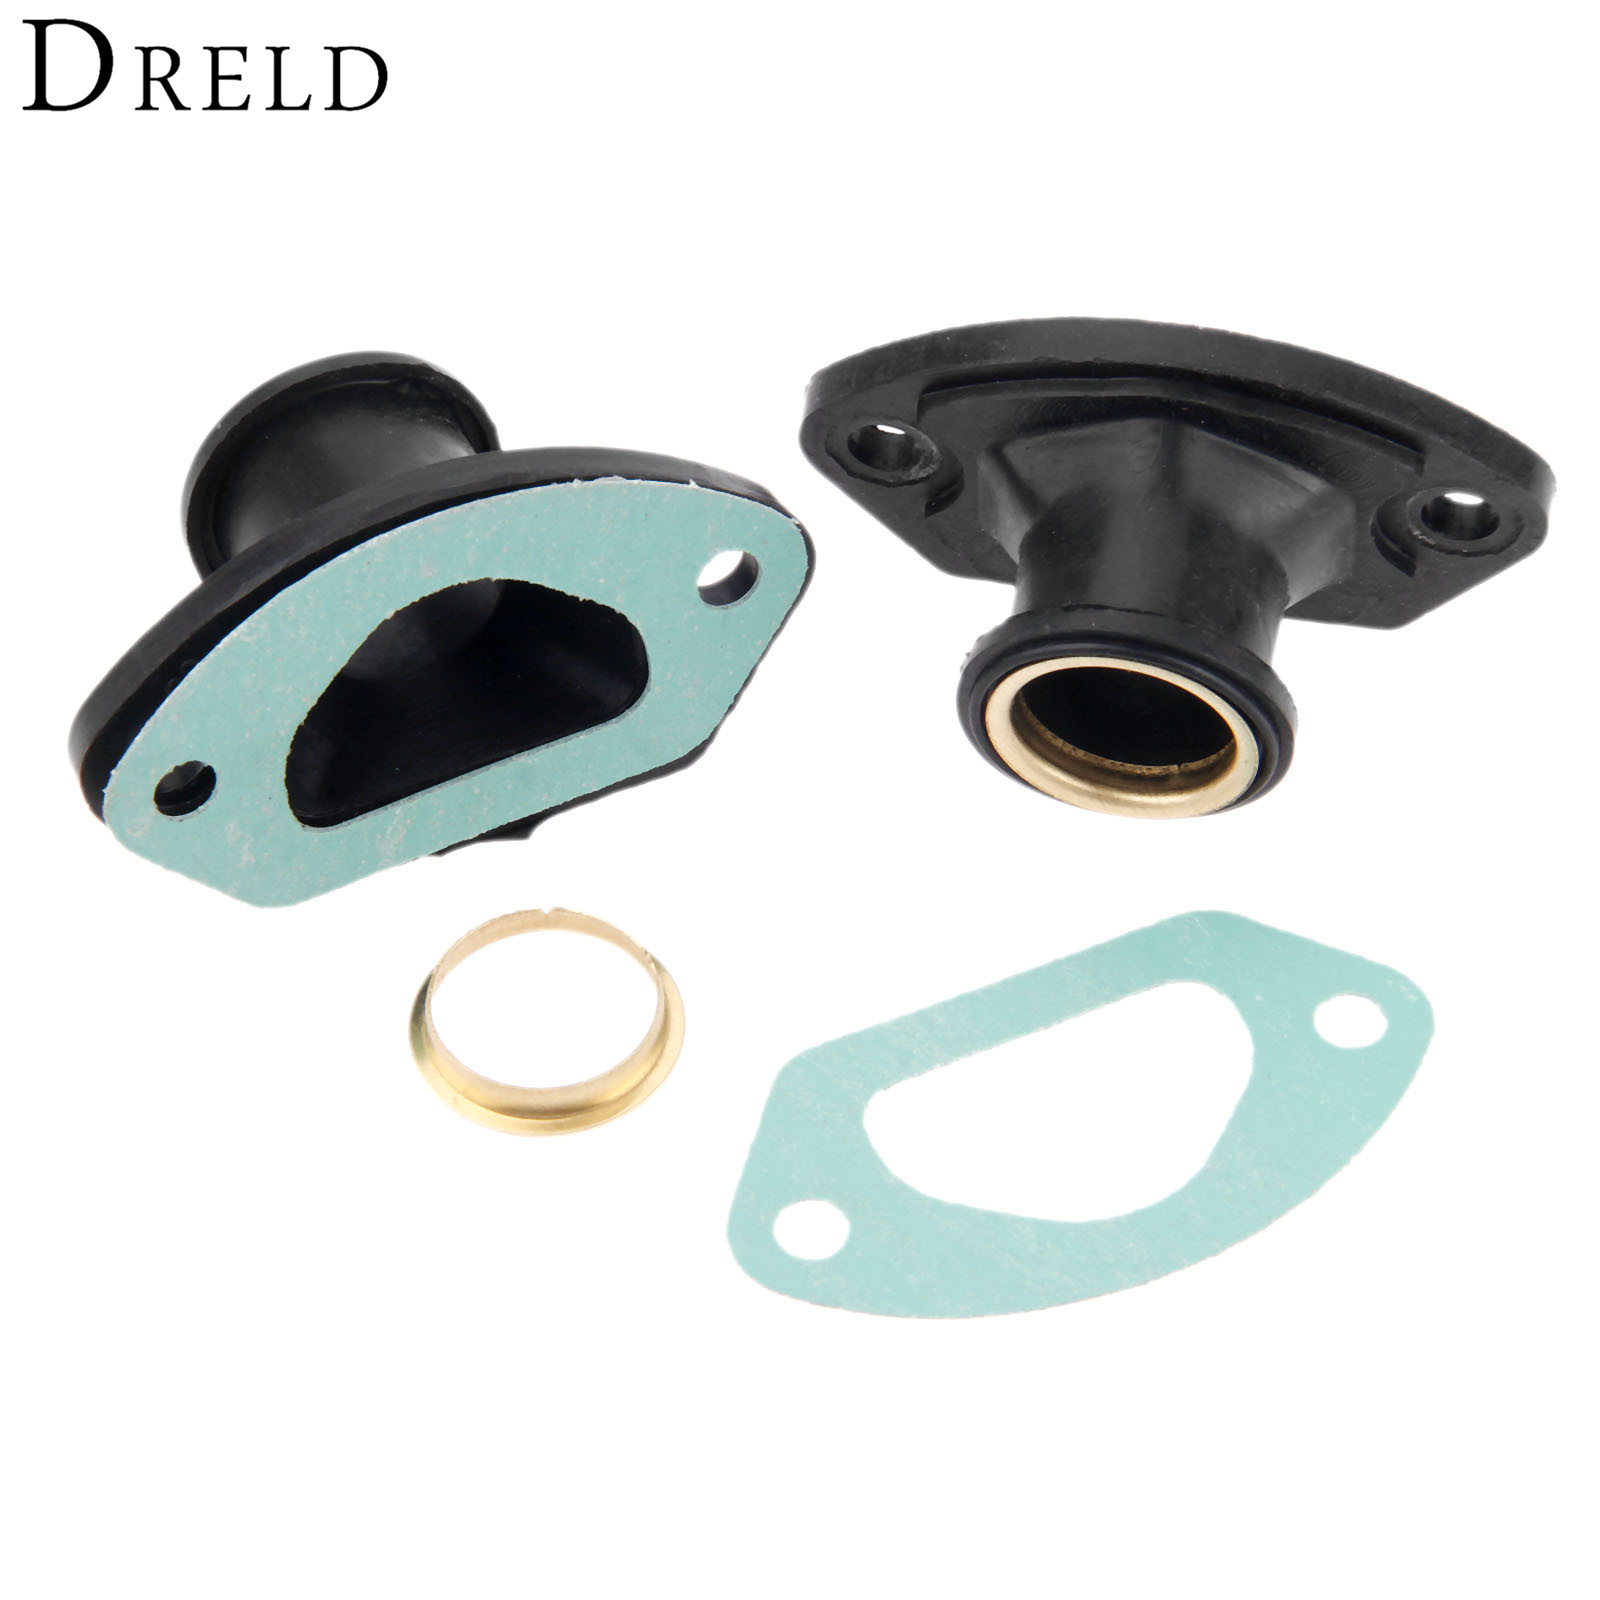 DRELD 2 Sets Chainsaw Parts Exhaust Intake Manifold With Ring & Gasket For 45CC/4500 52CC/5200 58CC/5800 Chinese Chainsaw Parts